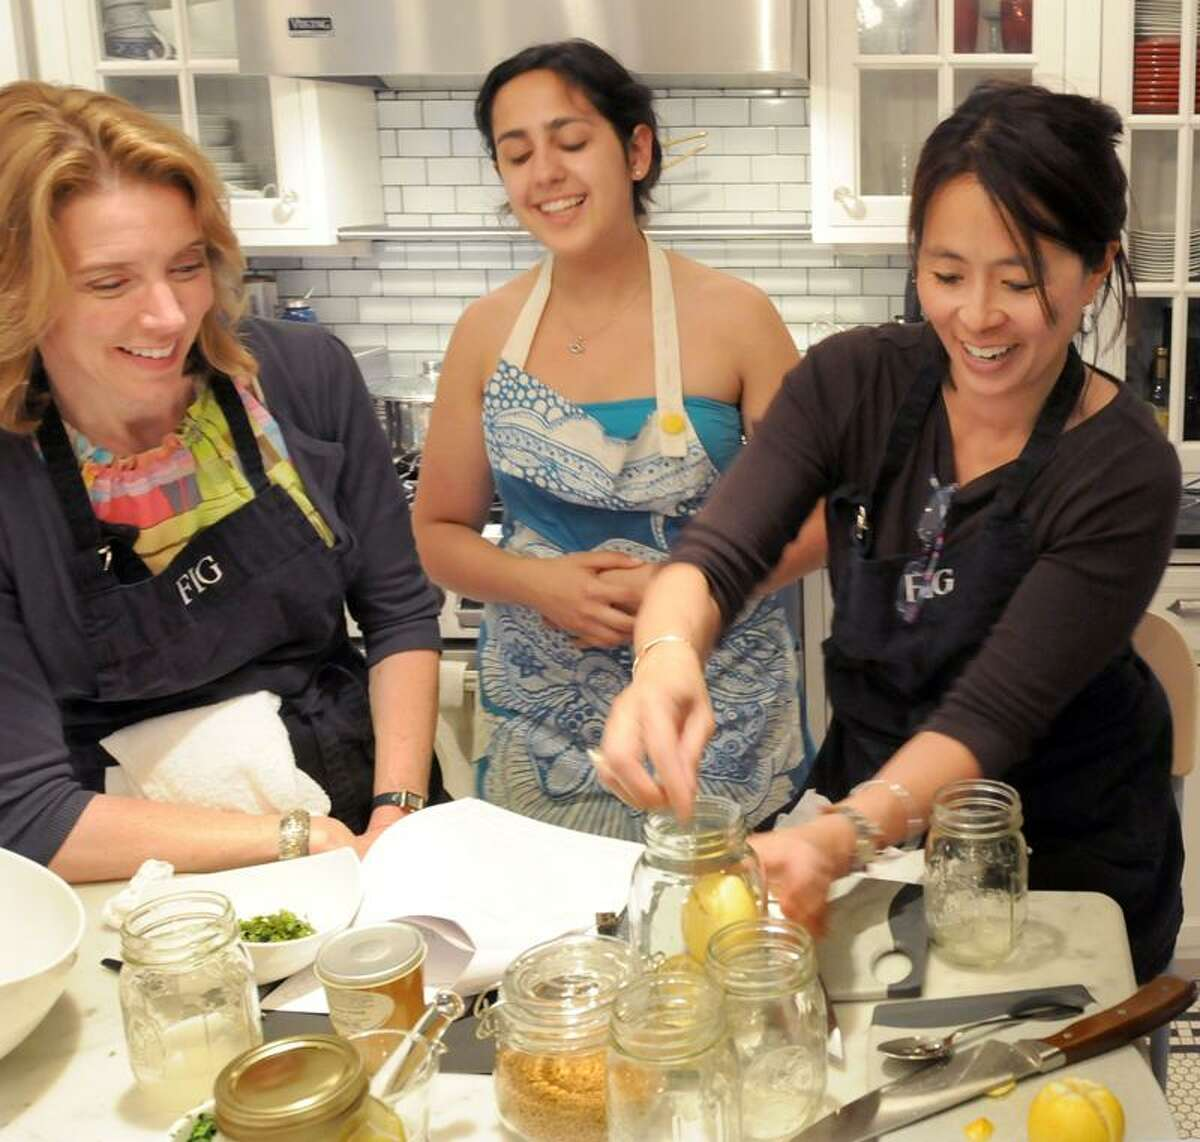 Students Eileen Bonetti of Farmington, left, and Kai Friedman try their hand at preserved lemons with school assistant Gabrielle Siegel, center, keeping an eye on things.